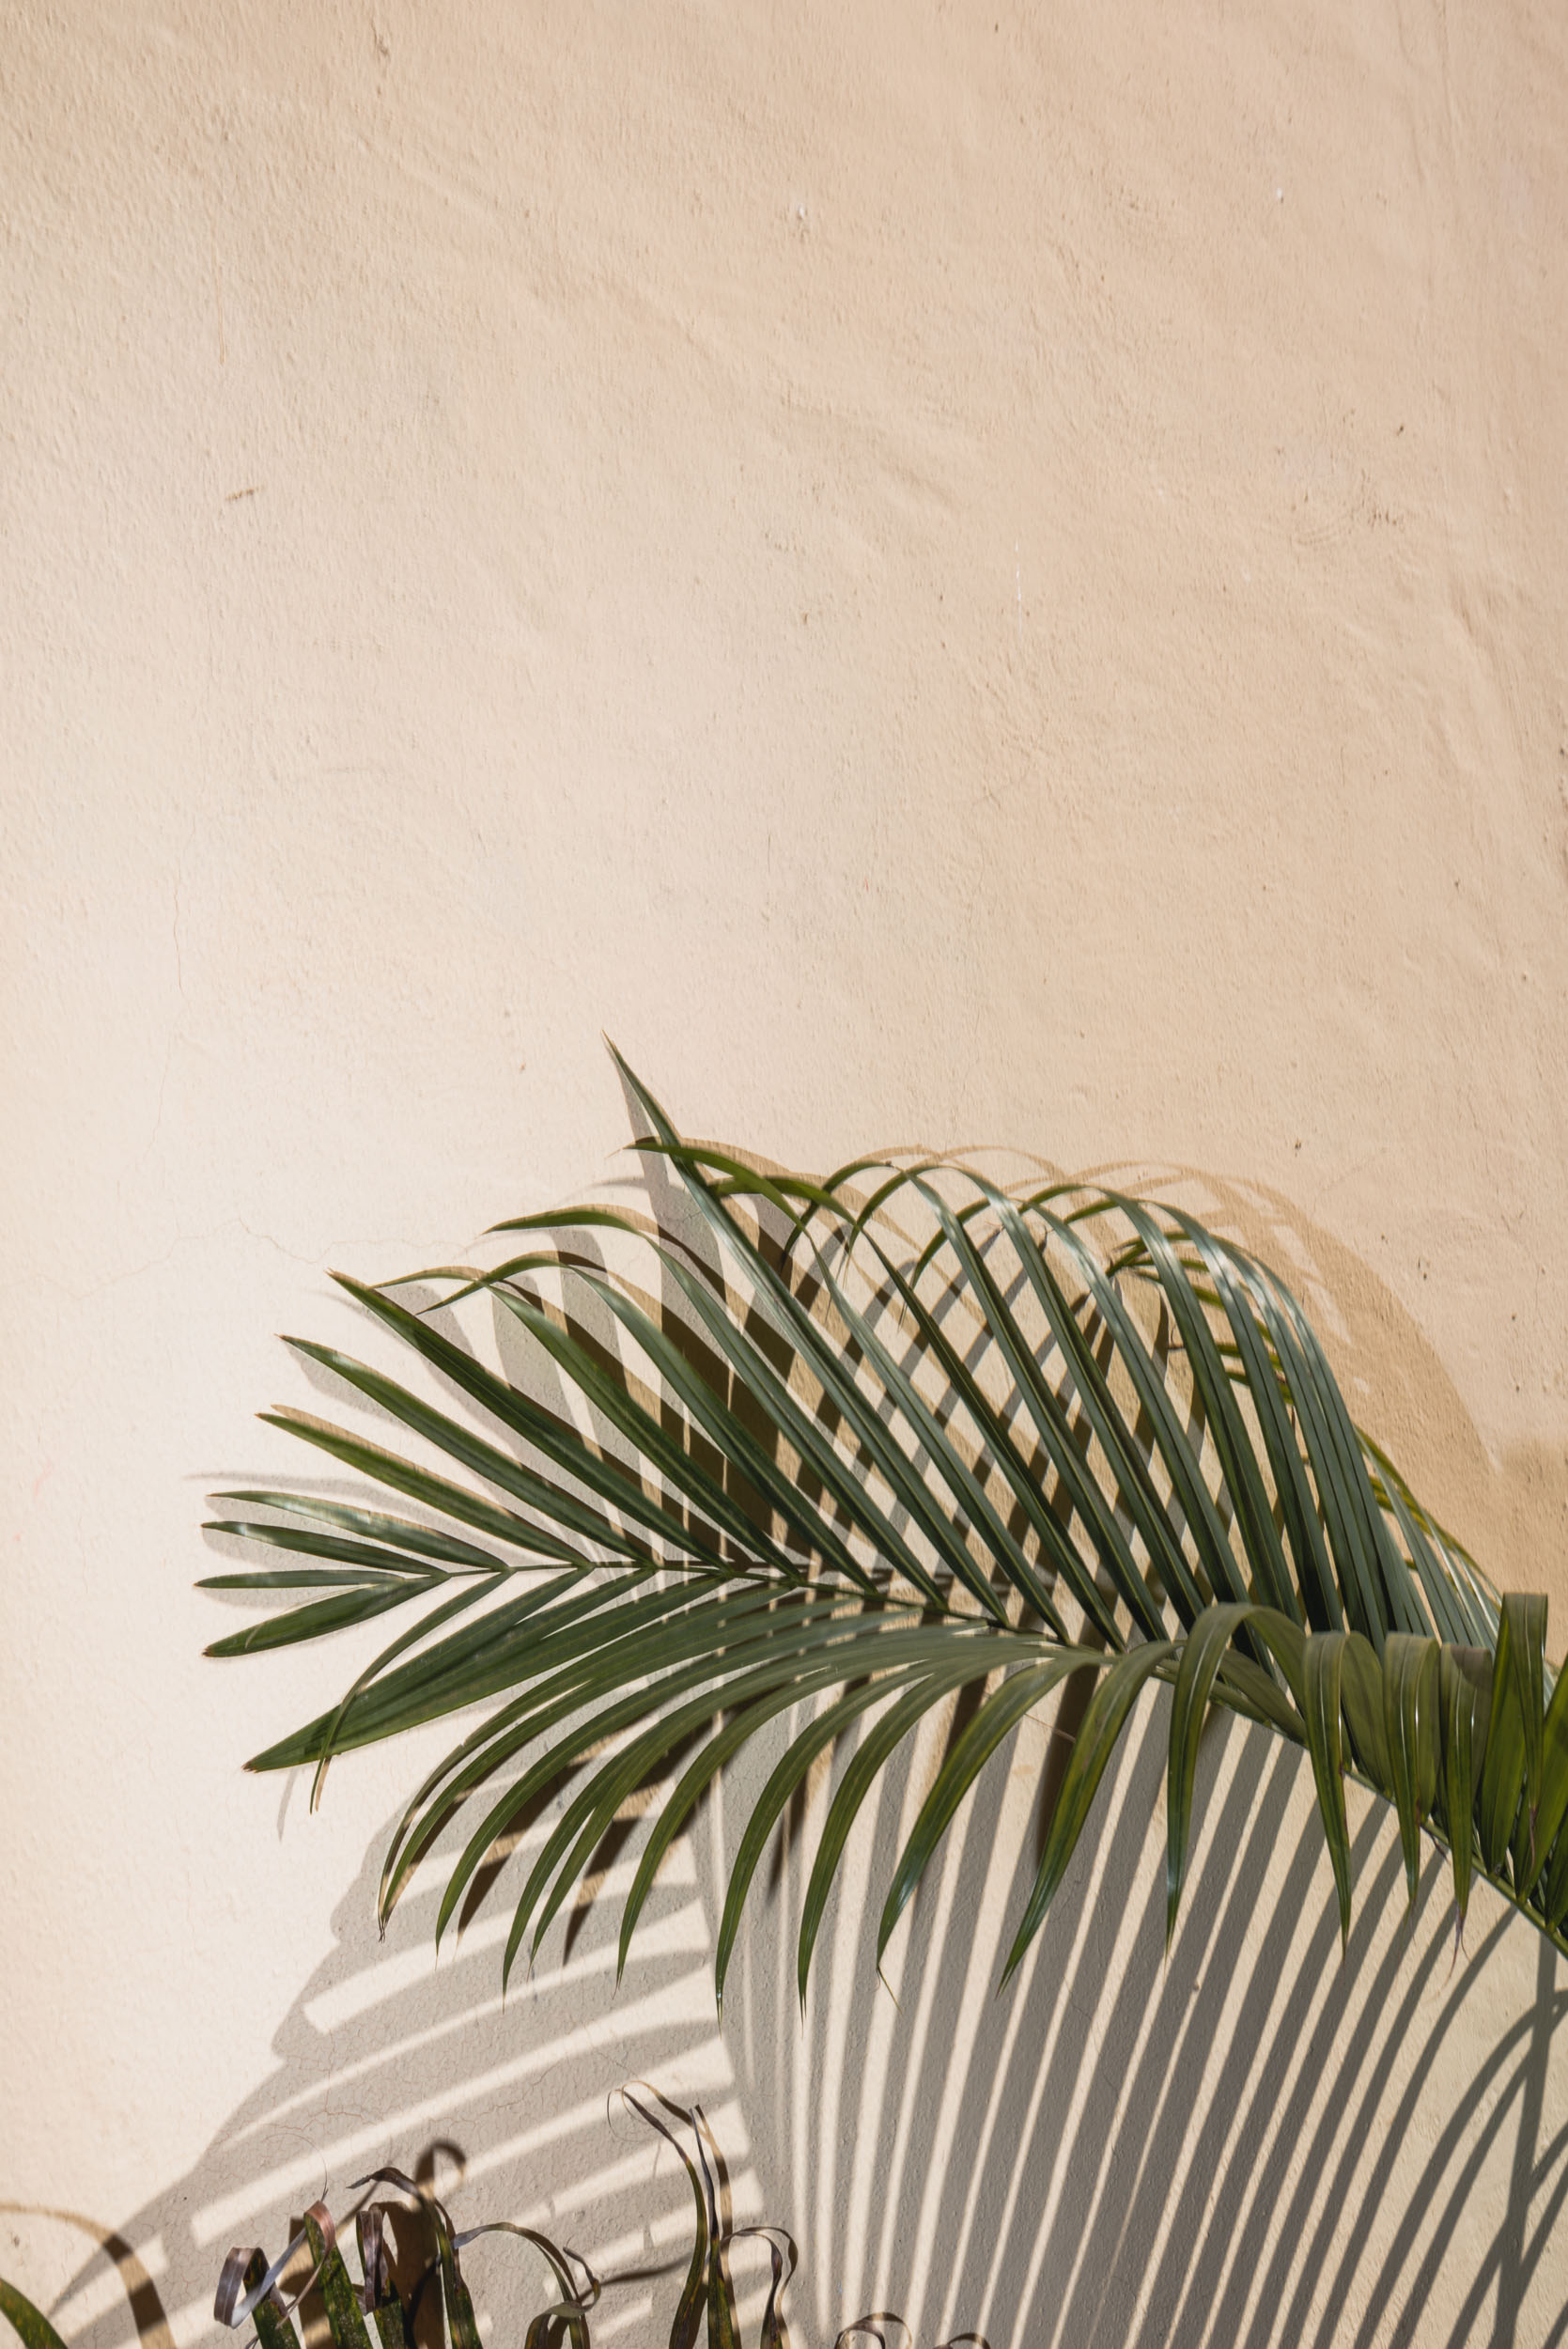 Palm frond against yellow wall